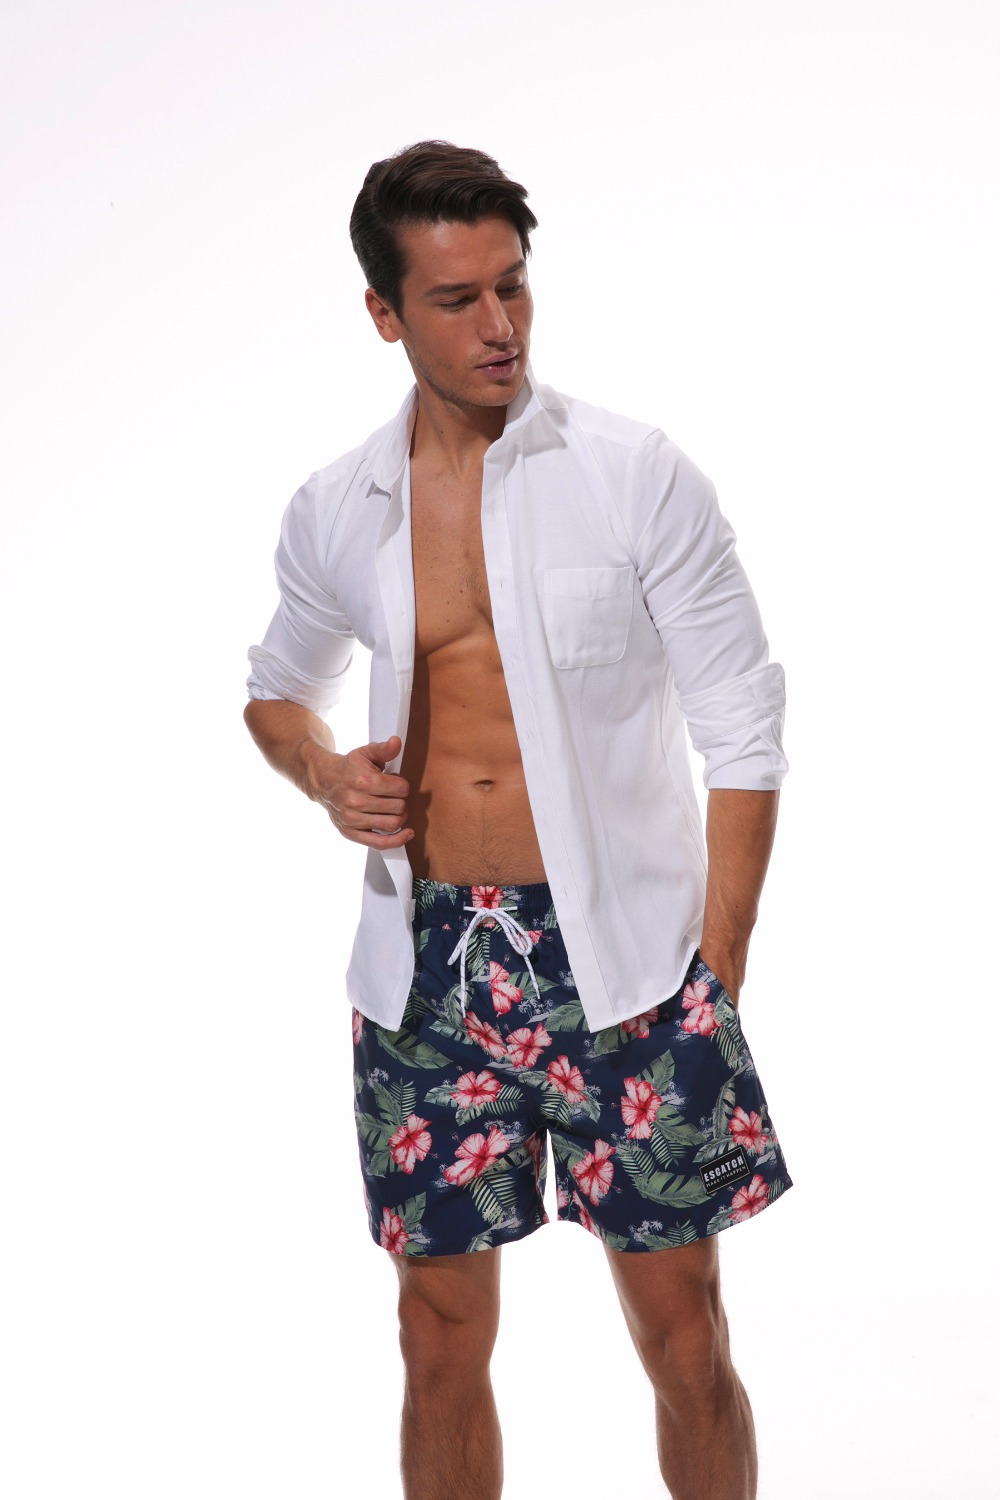 Topdudes.com - Men's Beach Fashion Quick Drying Board Trunks Shorts